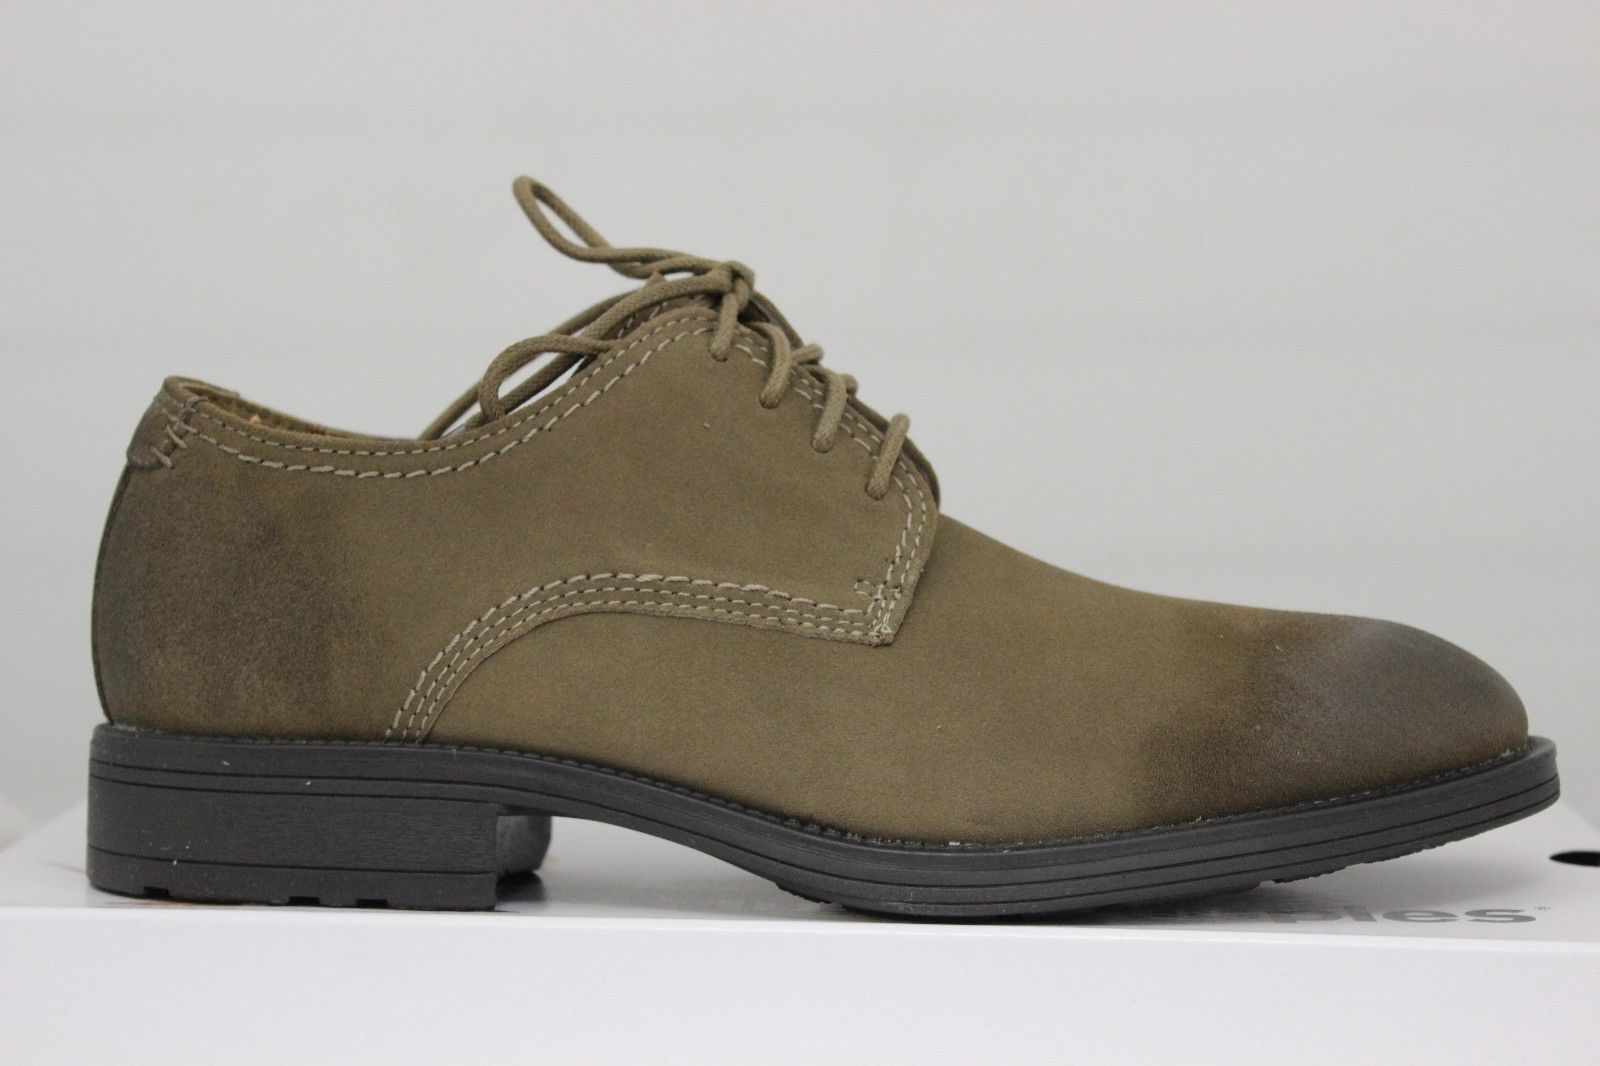 Men's Plane Oxford PL Taupe Suede H103622